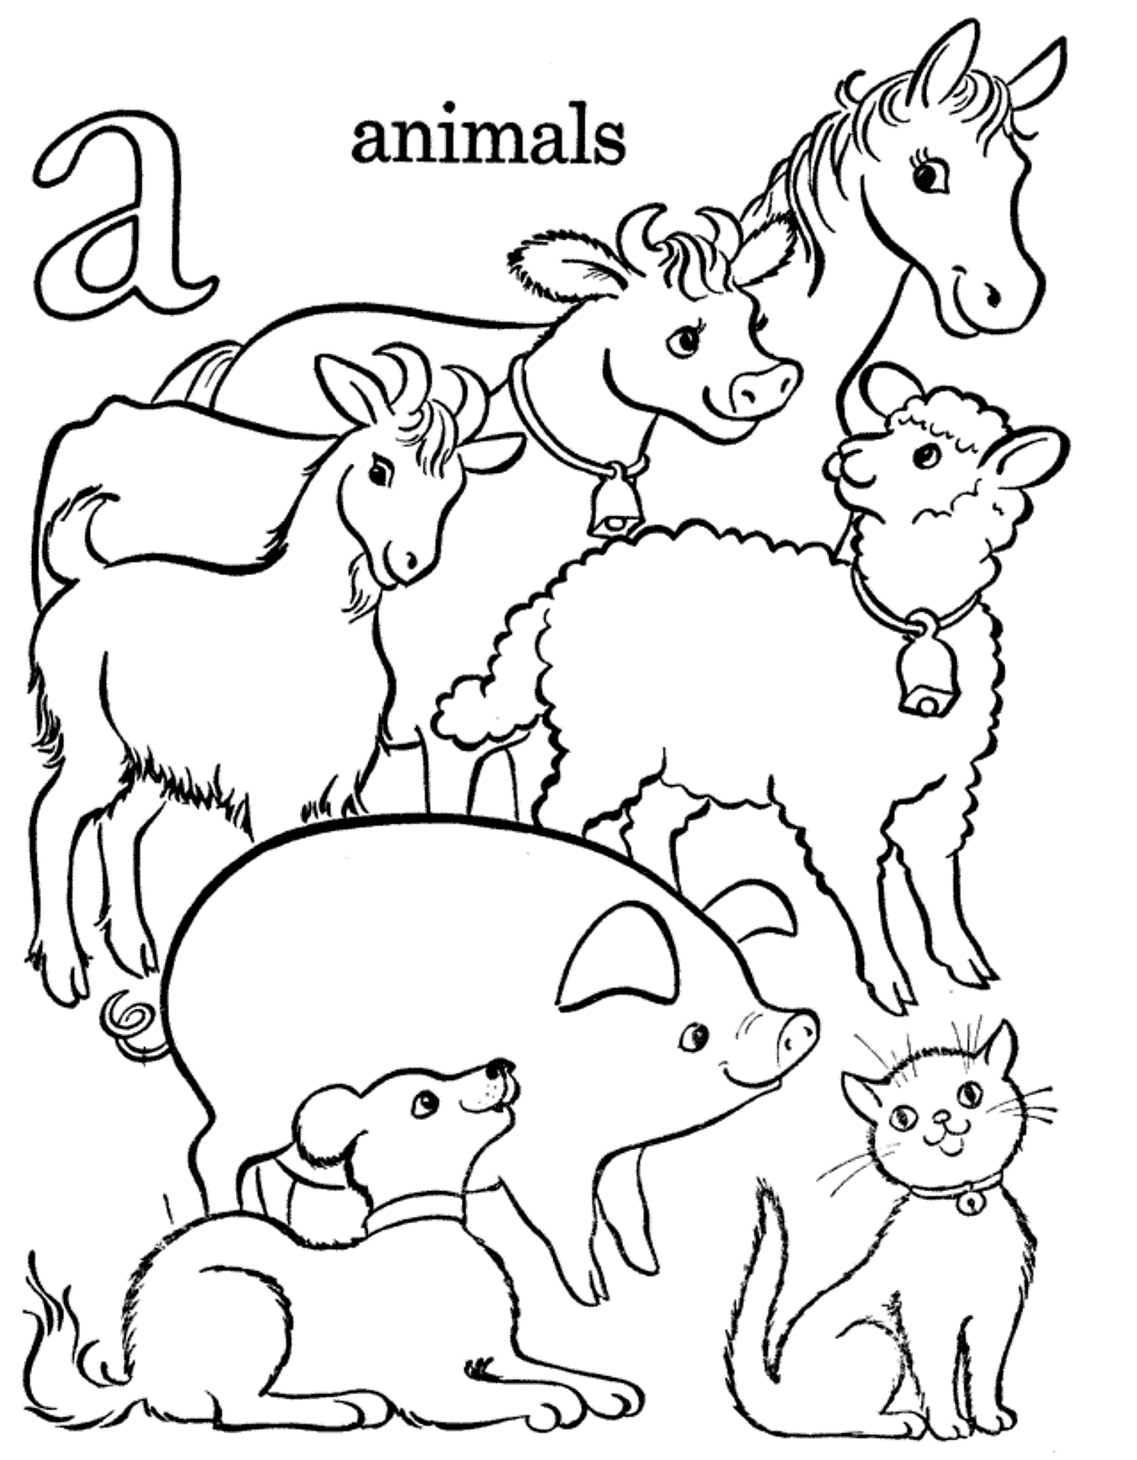 Anime Animals Coloring Pages Printable – Free Coloring Sheets